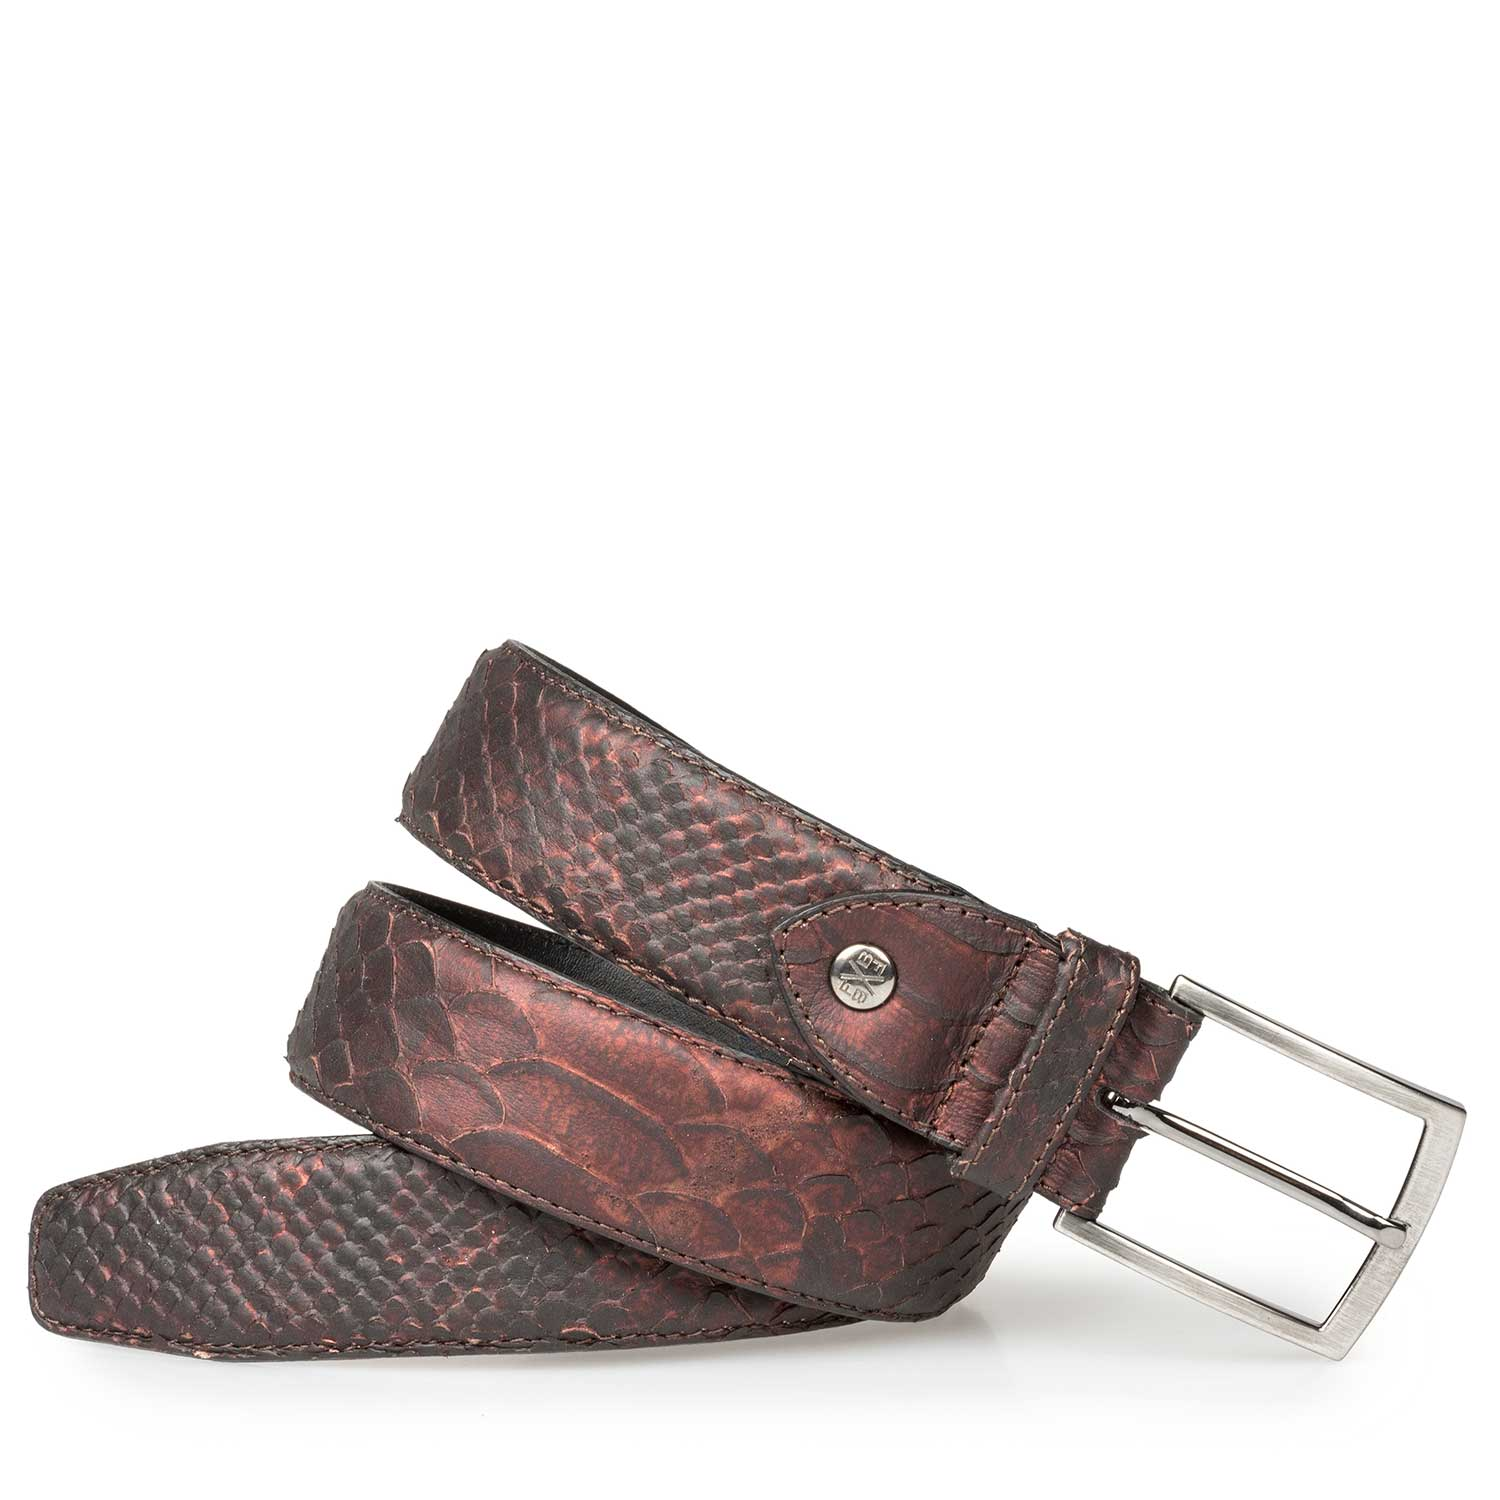 75190/04 - Leather belt with snake print